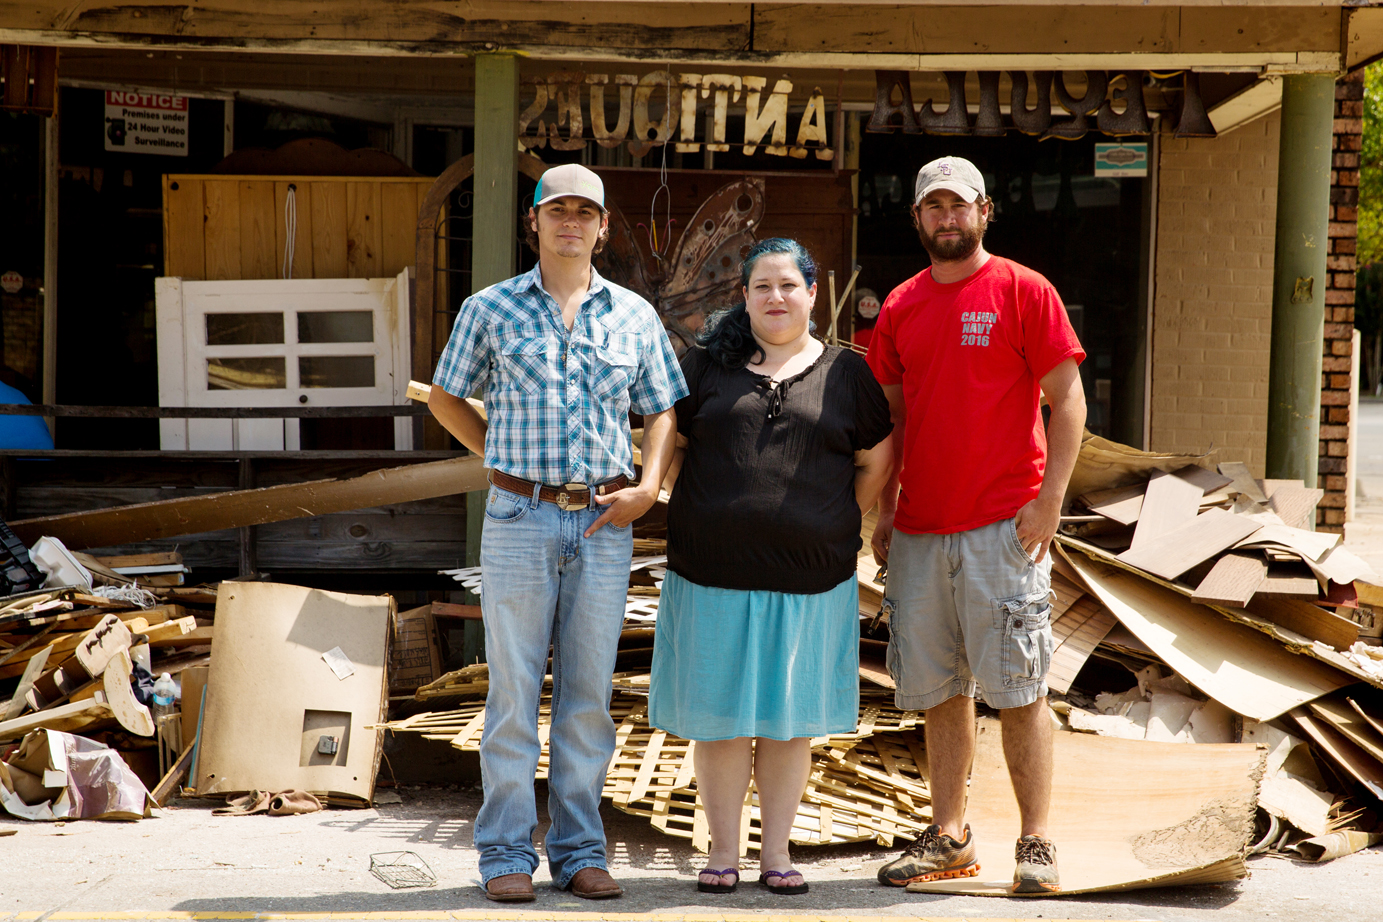 Nick Ramos, Lyndy Donaldson and Brandon Burchfield reunite in the remains of the Denham Springs Antique Village, steps from where Burchfield tied his boat after rescuing Donaldson when several feet of water engulfed this street in August. Photo by David Morris.